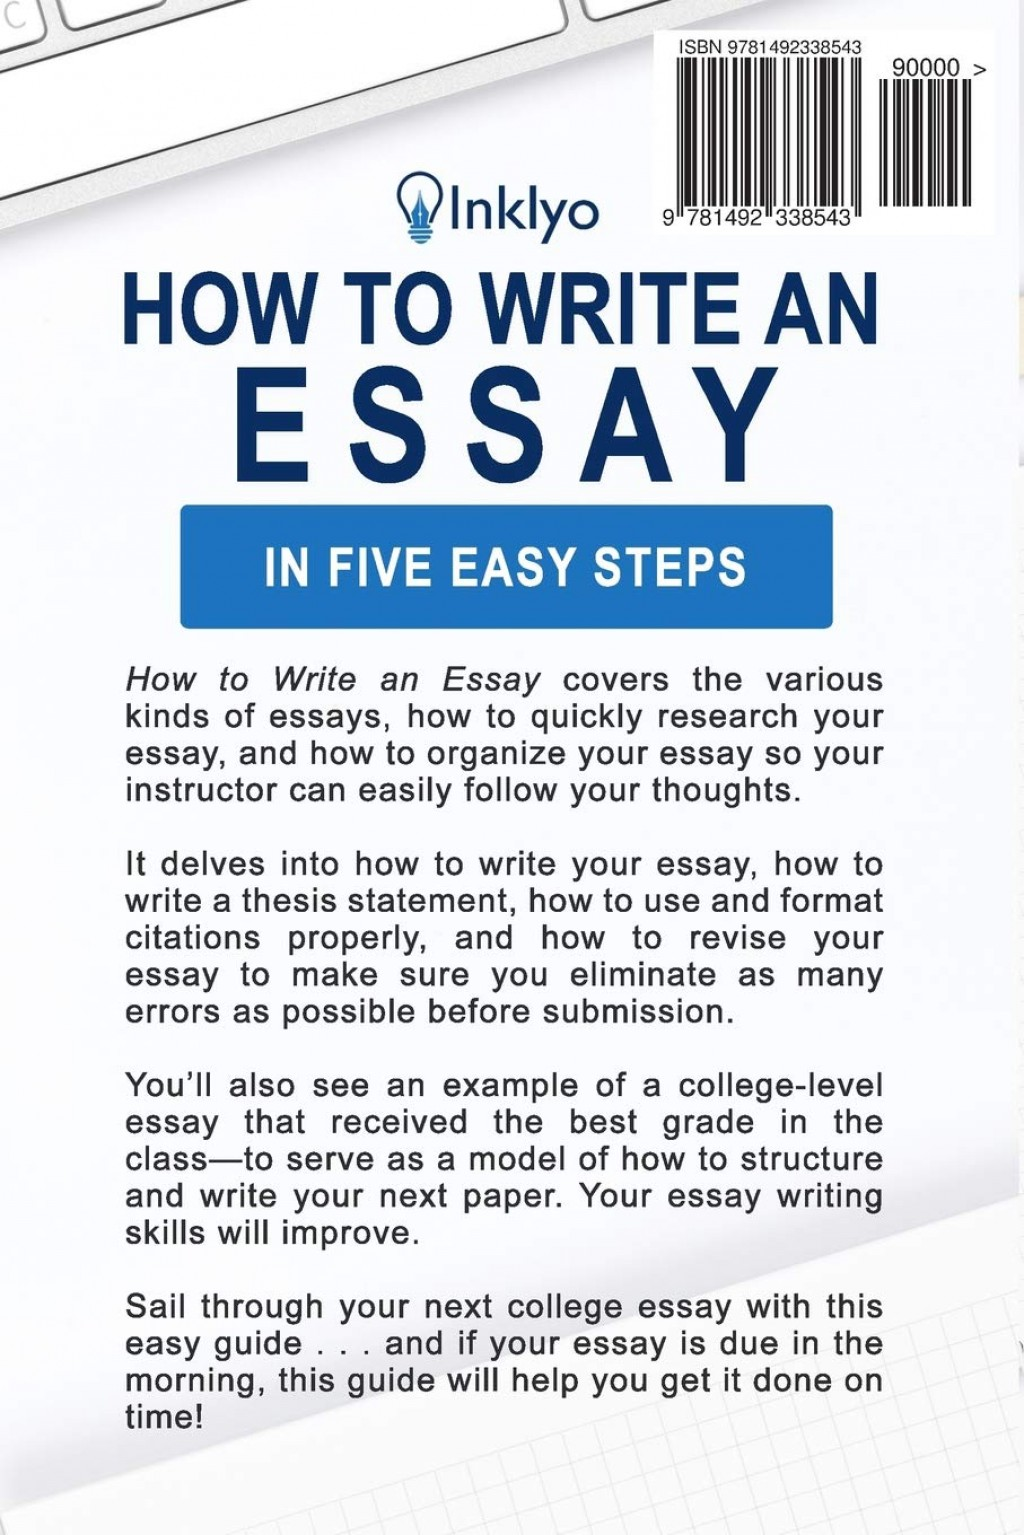 002 How To Write An Essay Example Shocking For College Scholarships About Yourself Application Fast Food Large